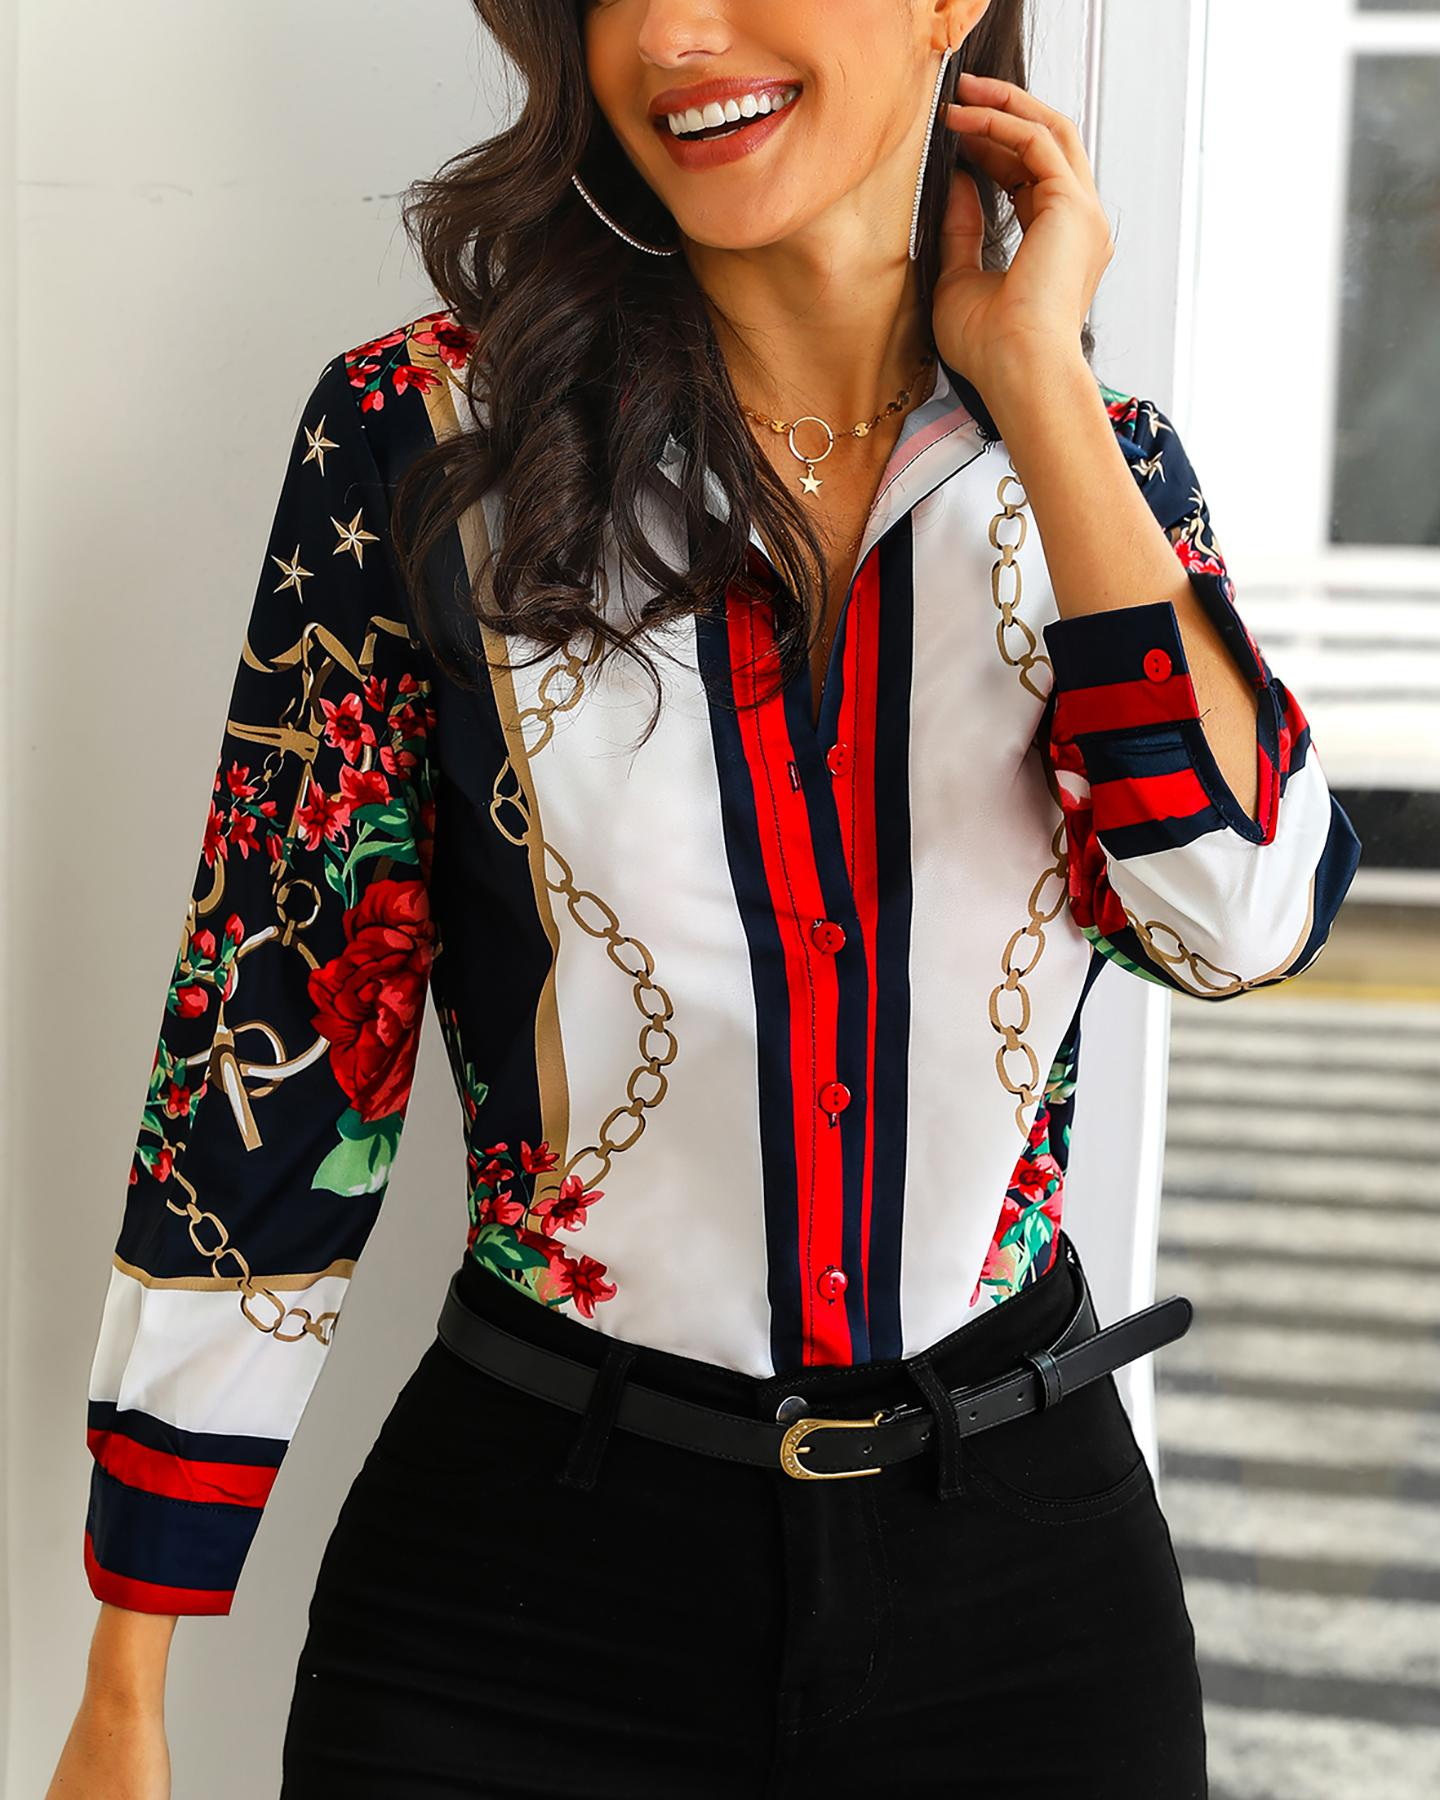 chicme / Floral & Chains Print Casual Blouse